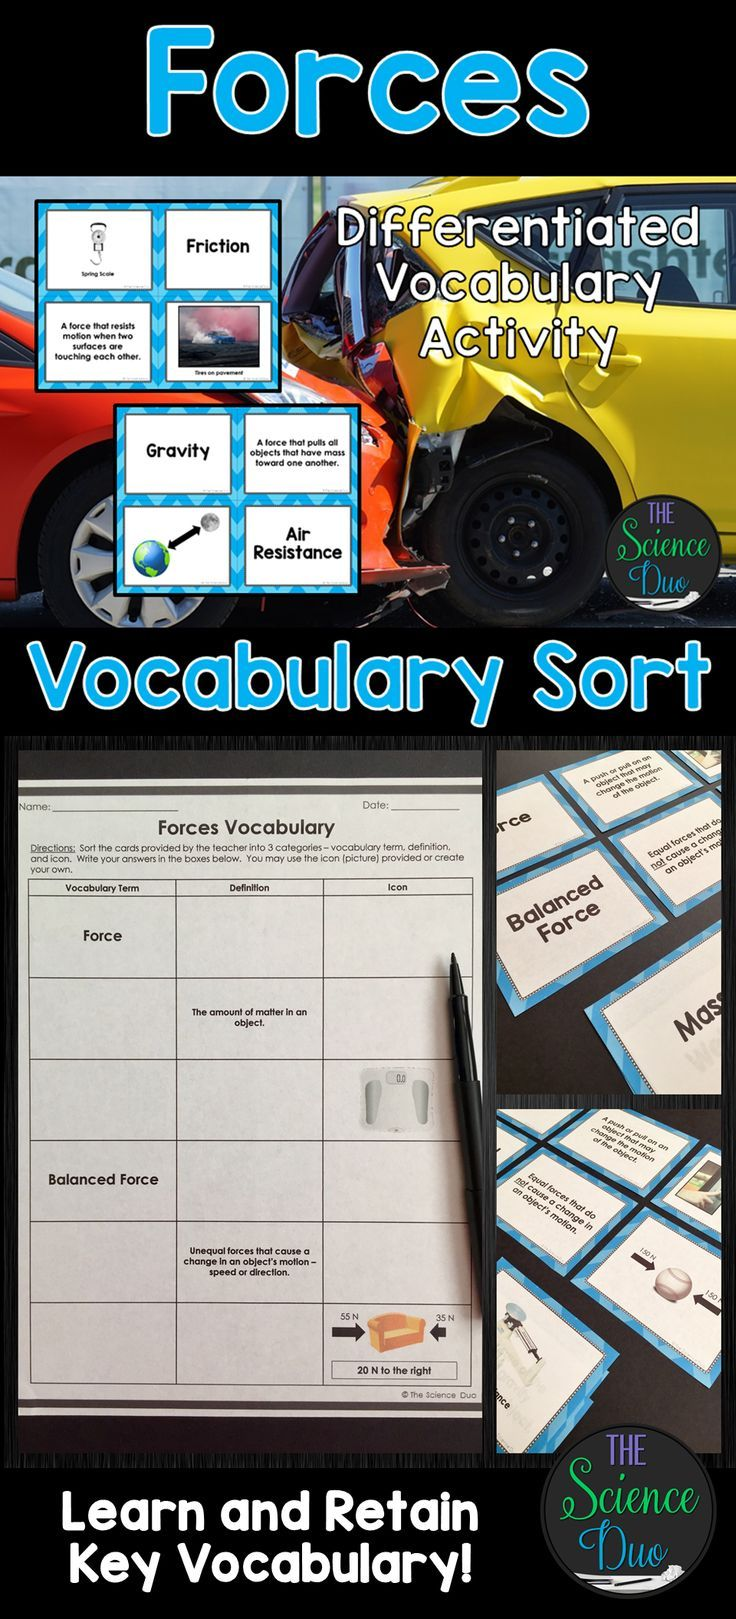 Help your students grasp and retain key Forces vocabulary with this interactive vocabulary sort activity. This resource includes 10 key terms to match to a definition and icon (picture), 3 different student answer sheets to meet the needs of your individual students or classes, and an answer key.